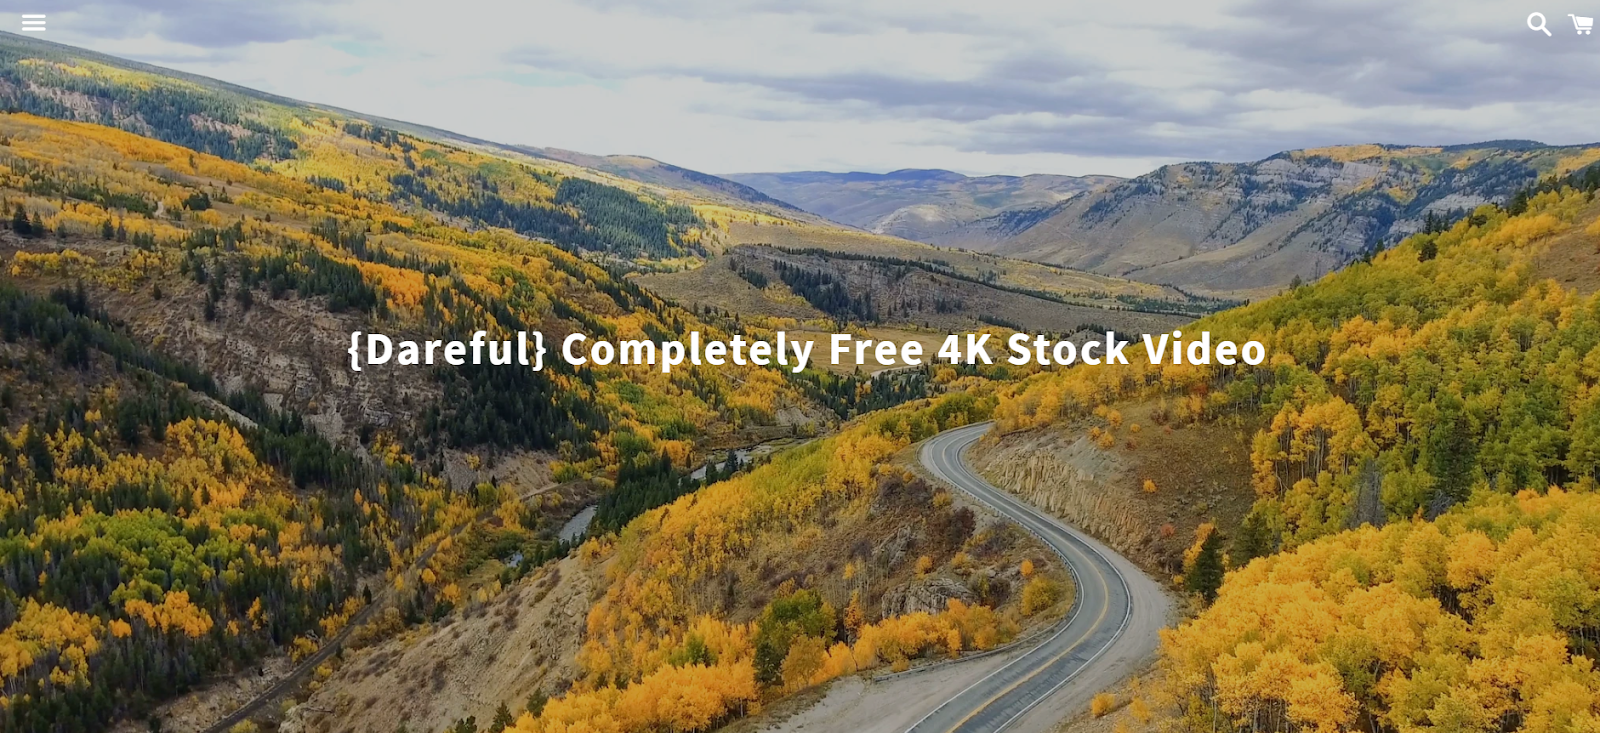 dareful a website for stock video download